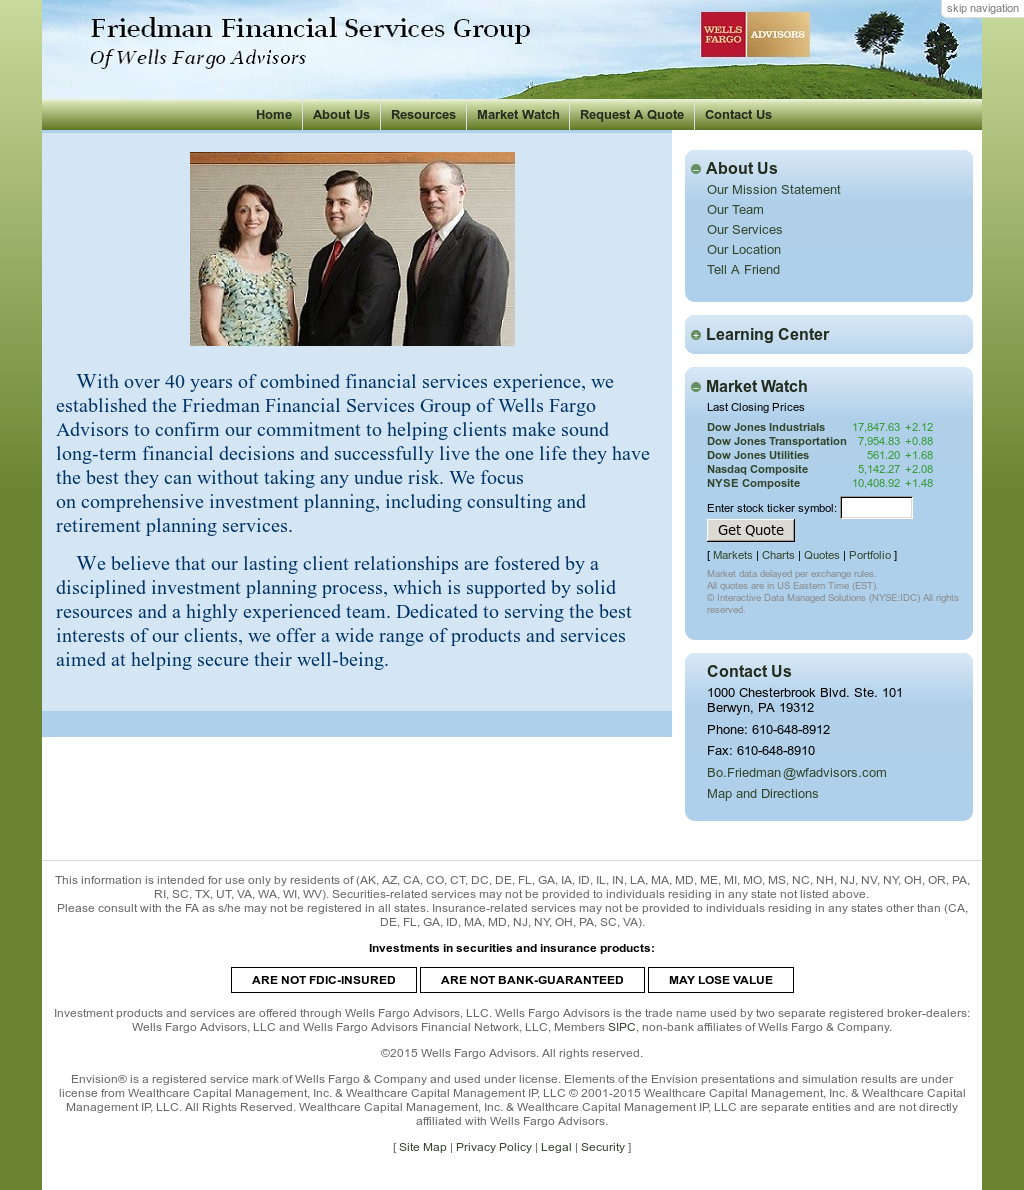 Friedman Financial Services Group Of Wells Fargo Advisors